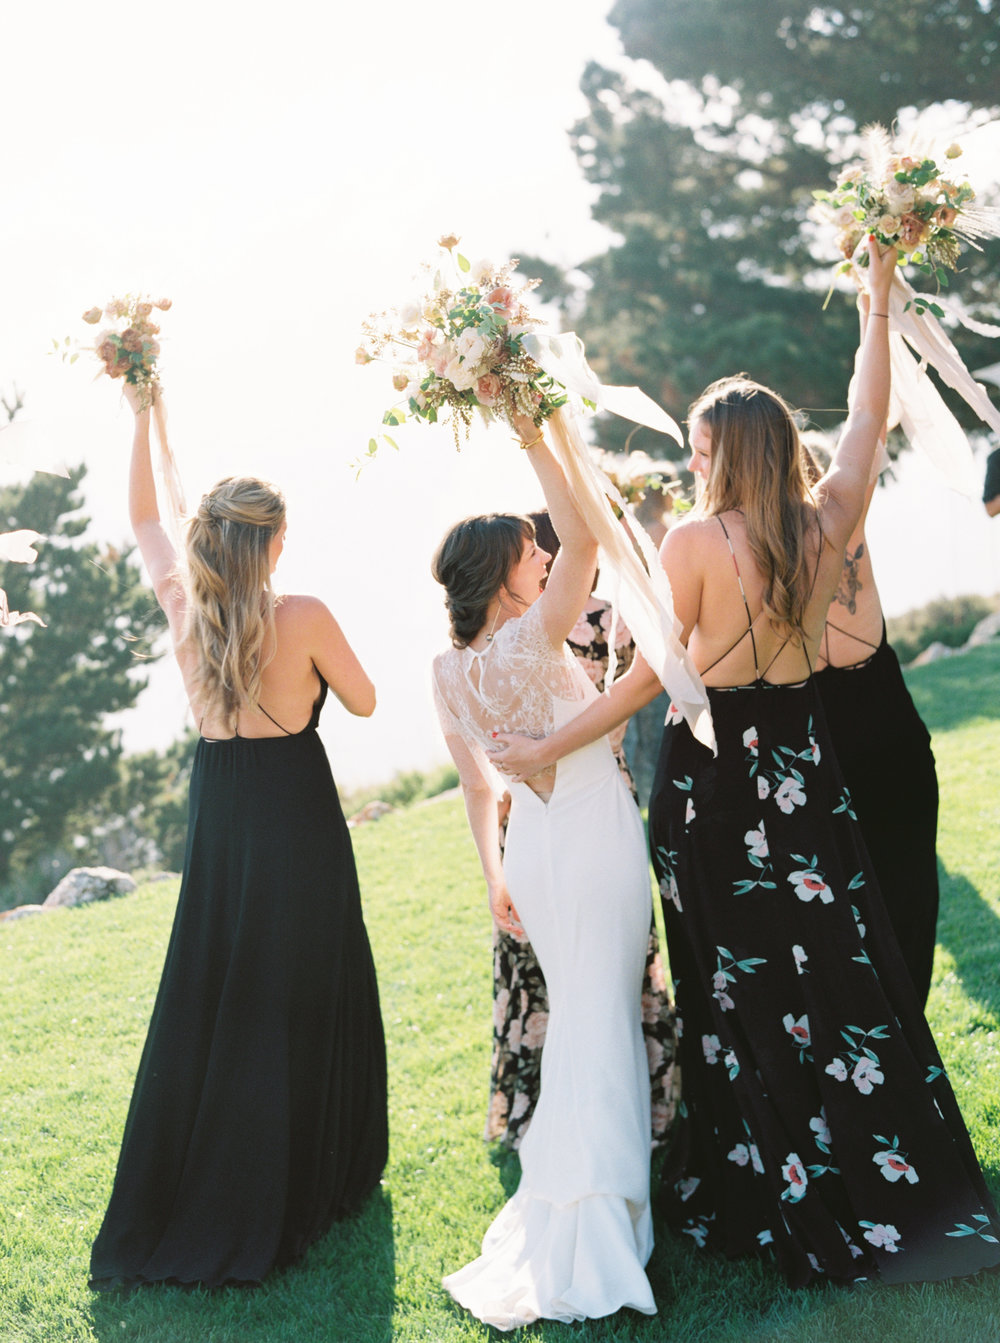 12th-Table-BIG-SUR-WEDDING-Erich-McVey-4